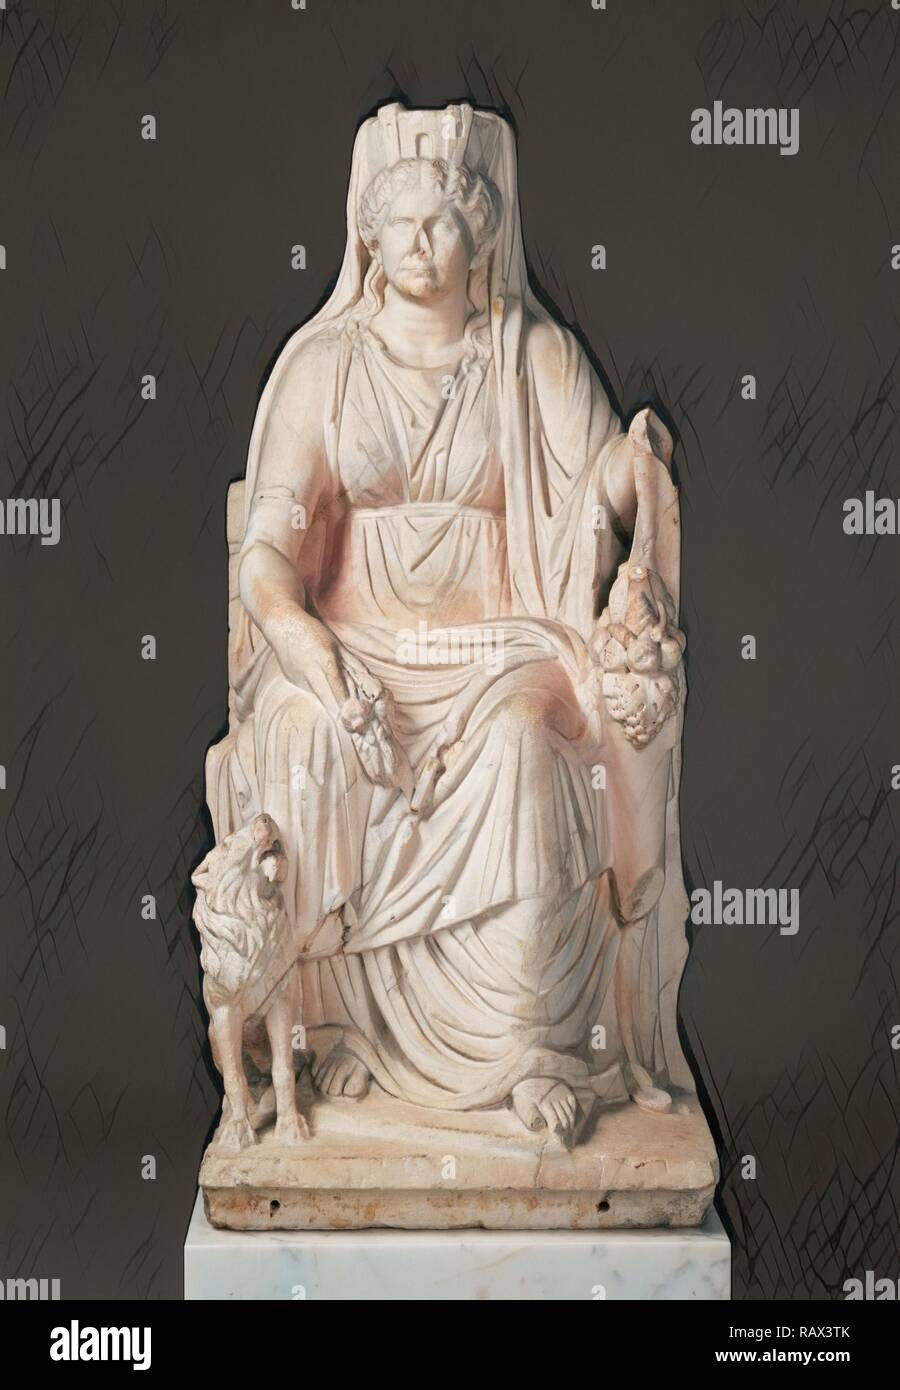 Statue of a Seated Cybele with the Portrait Head of her Priestess, Unknown, Roman Empire, about 50, Marble, Object: H reimagined - Stock Image